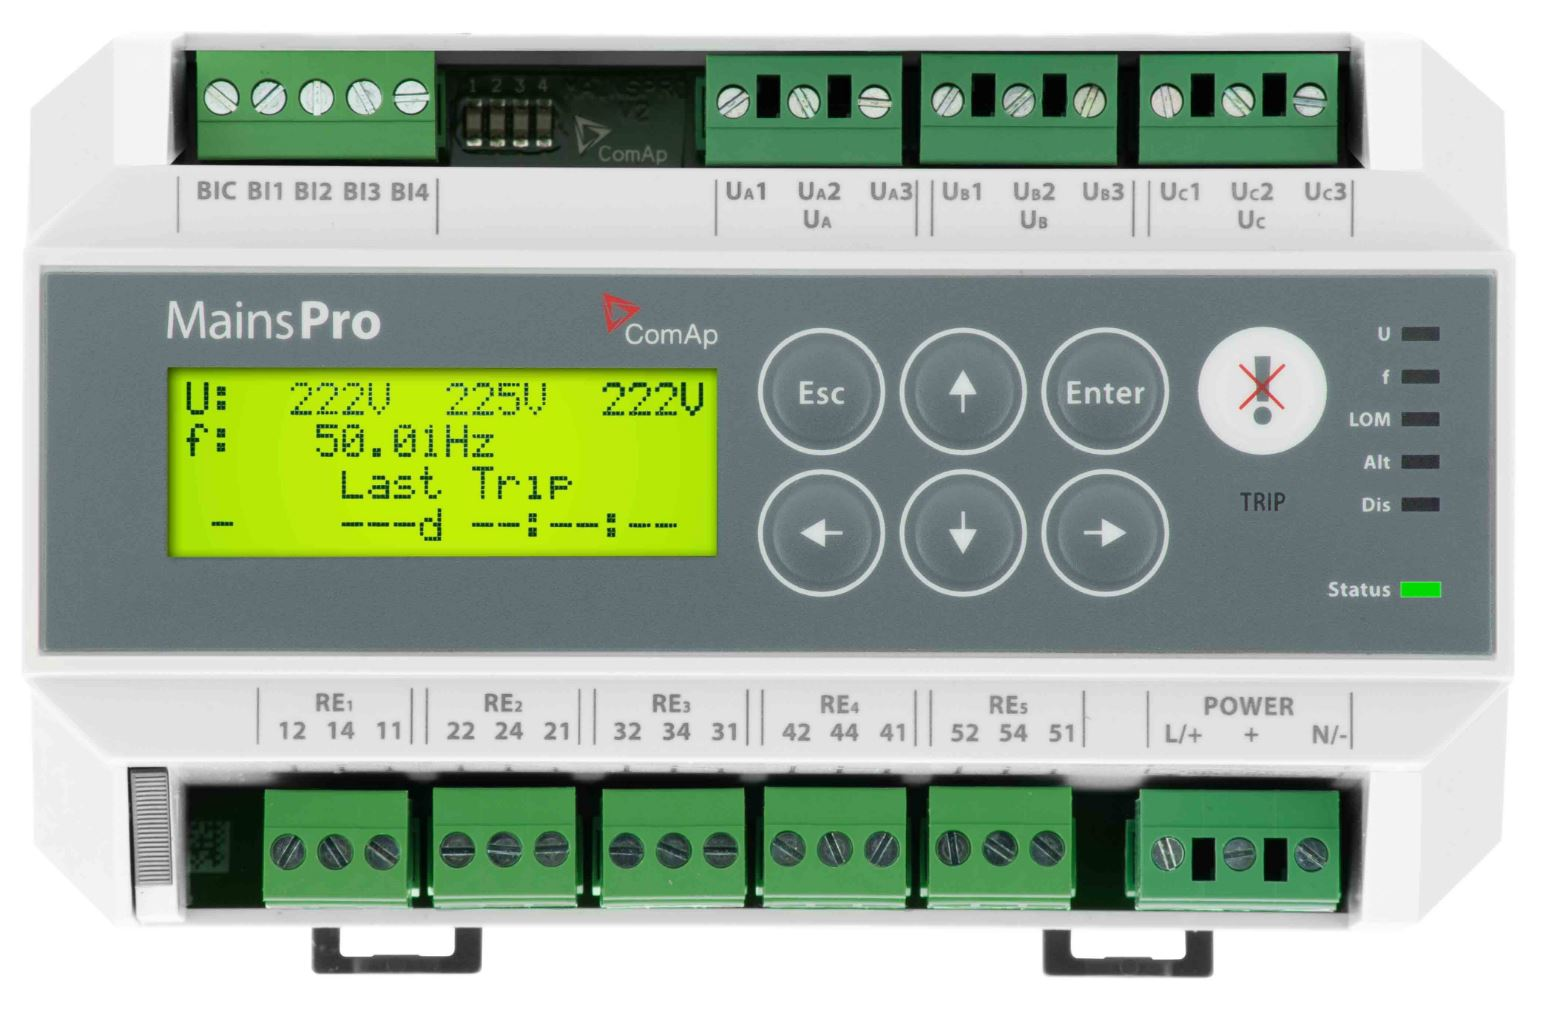 Abb Cm Ufdm33 Solar Protection Relay Bcj Controls Under Current Comap Mainspro